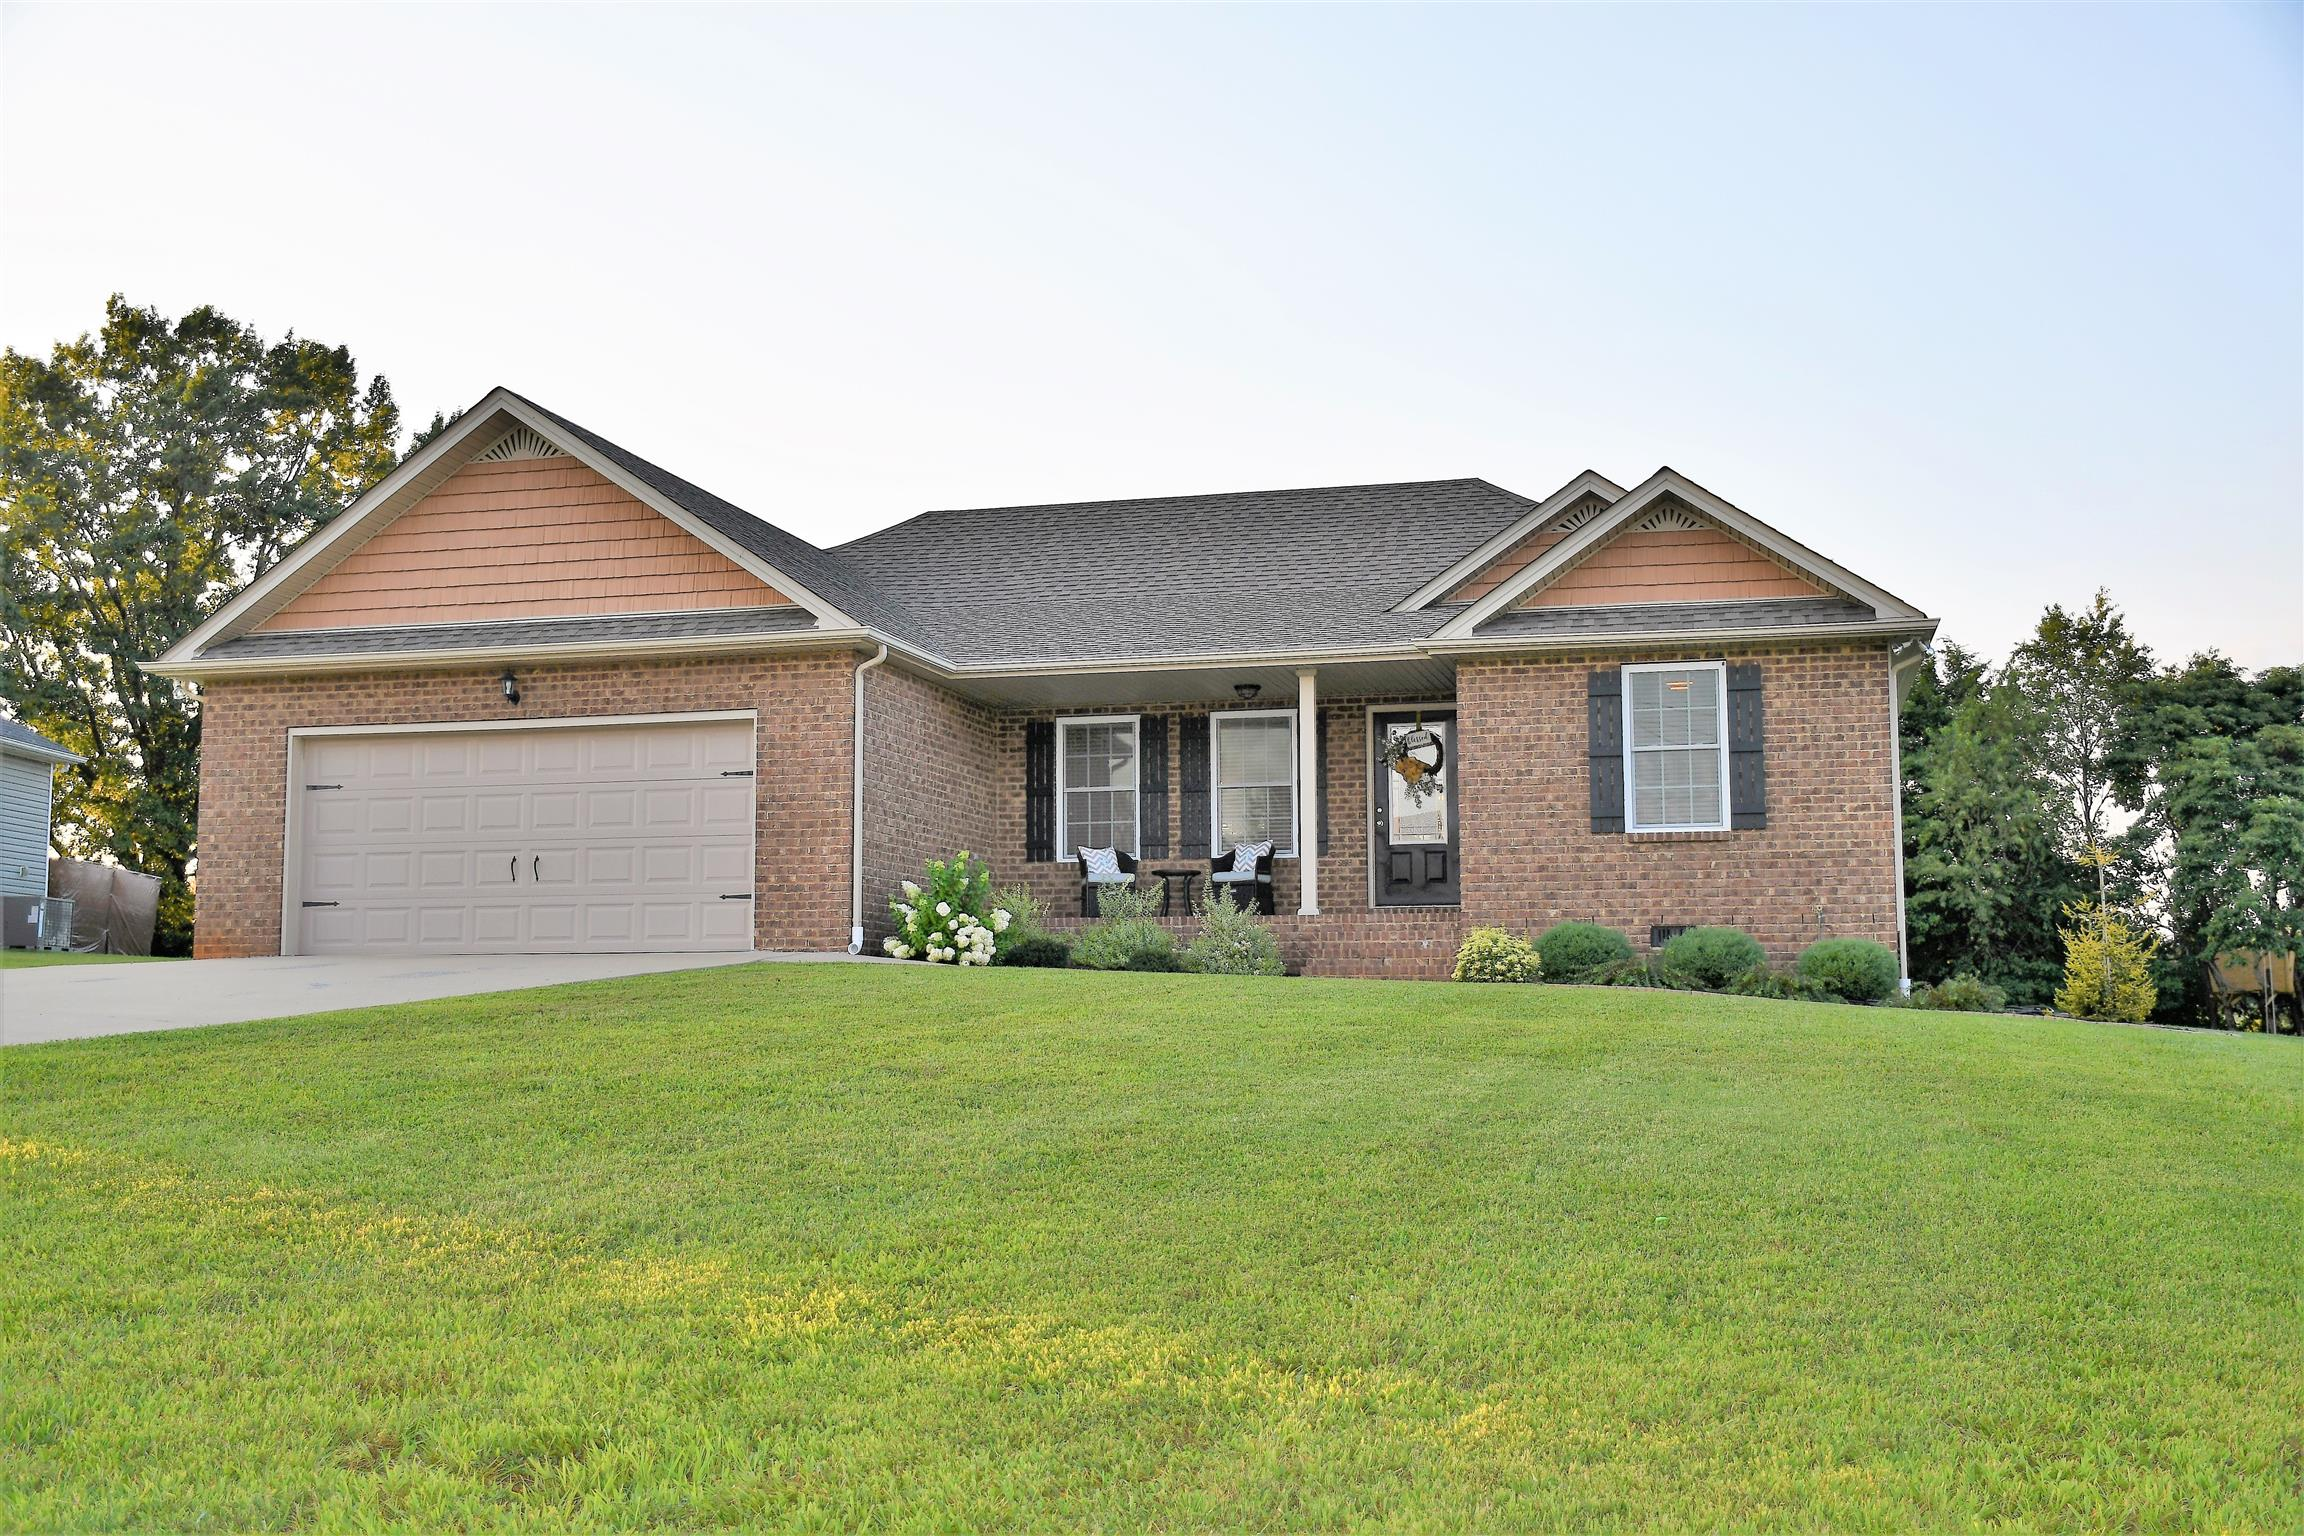 Beautiful Home With Split Bedroom Floor Plan And Custom Cabinets!  125 Hollands Way, Portland, TN, 37148